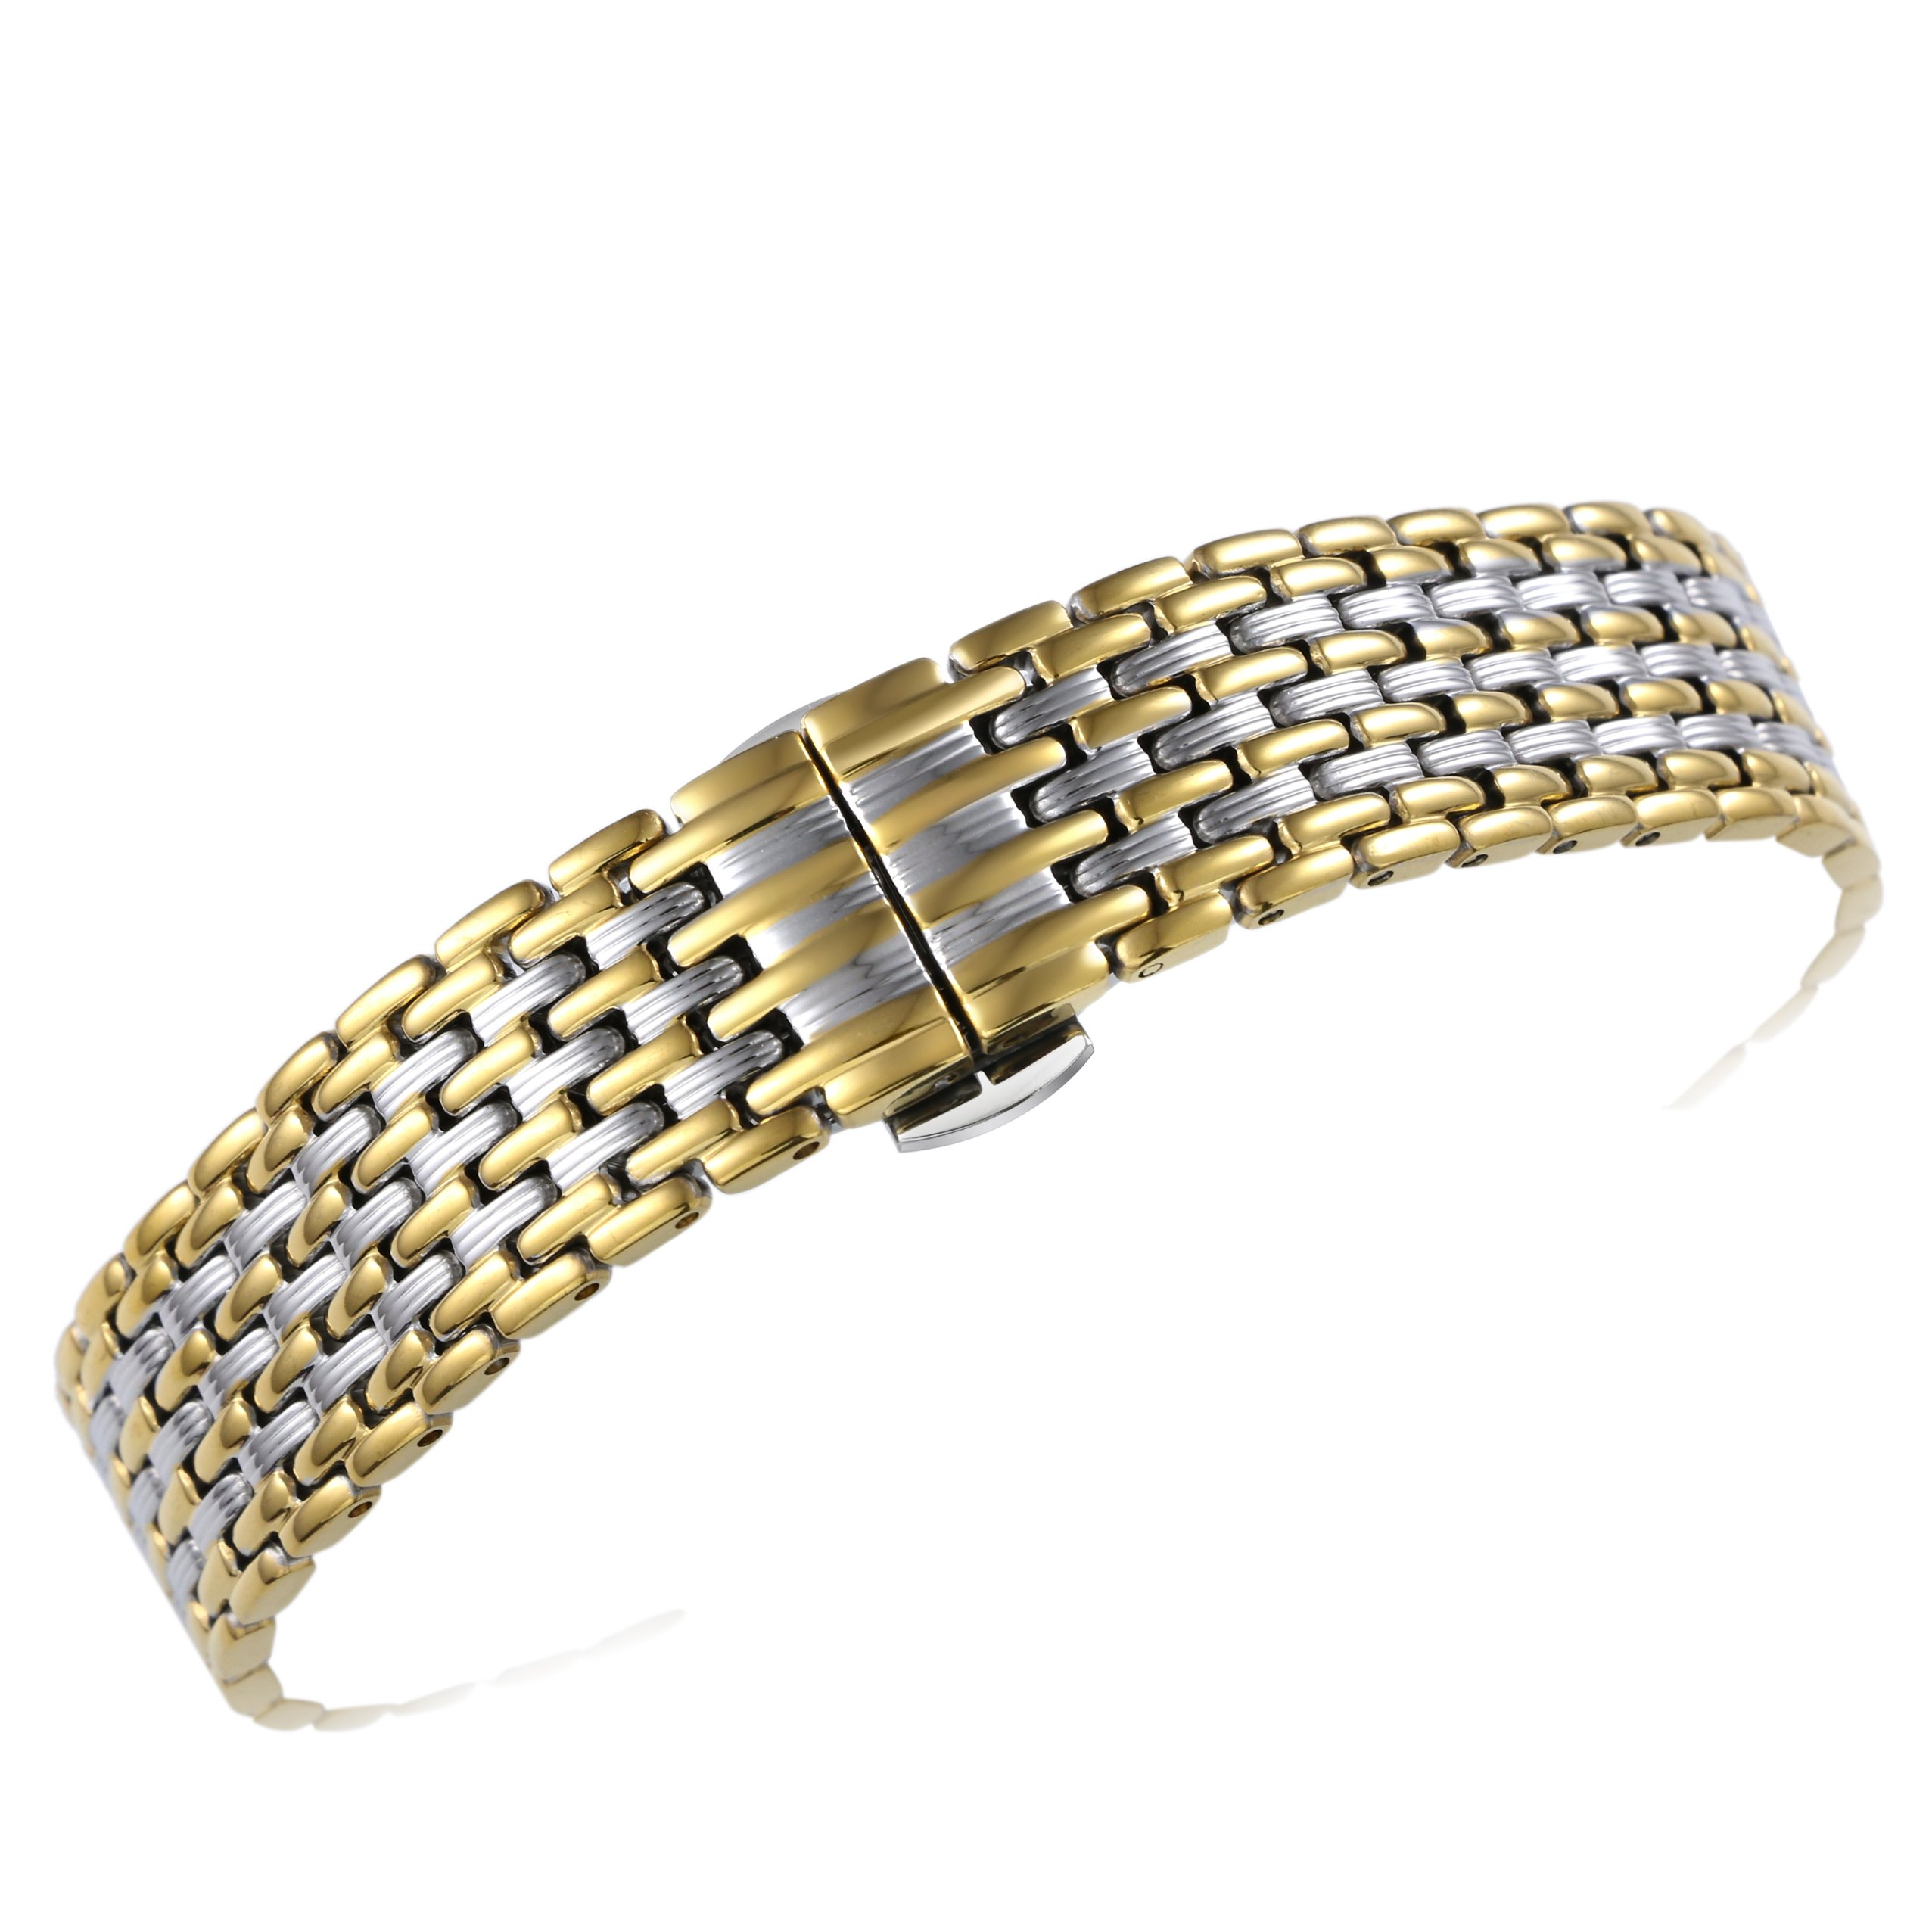 16mm Women's Elegant Two Tone Silver/Gold Metal Watch Bands Special Unique Pleated Pattern Solid 316L Stainless Steel